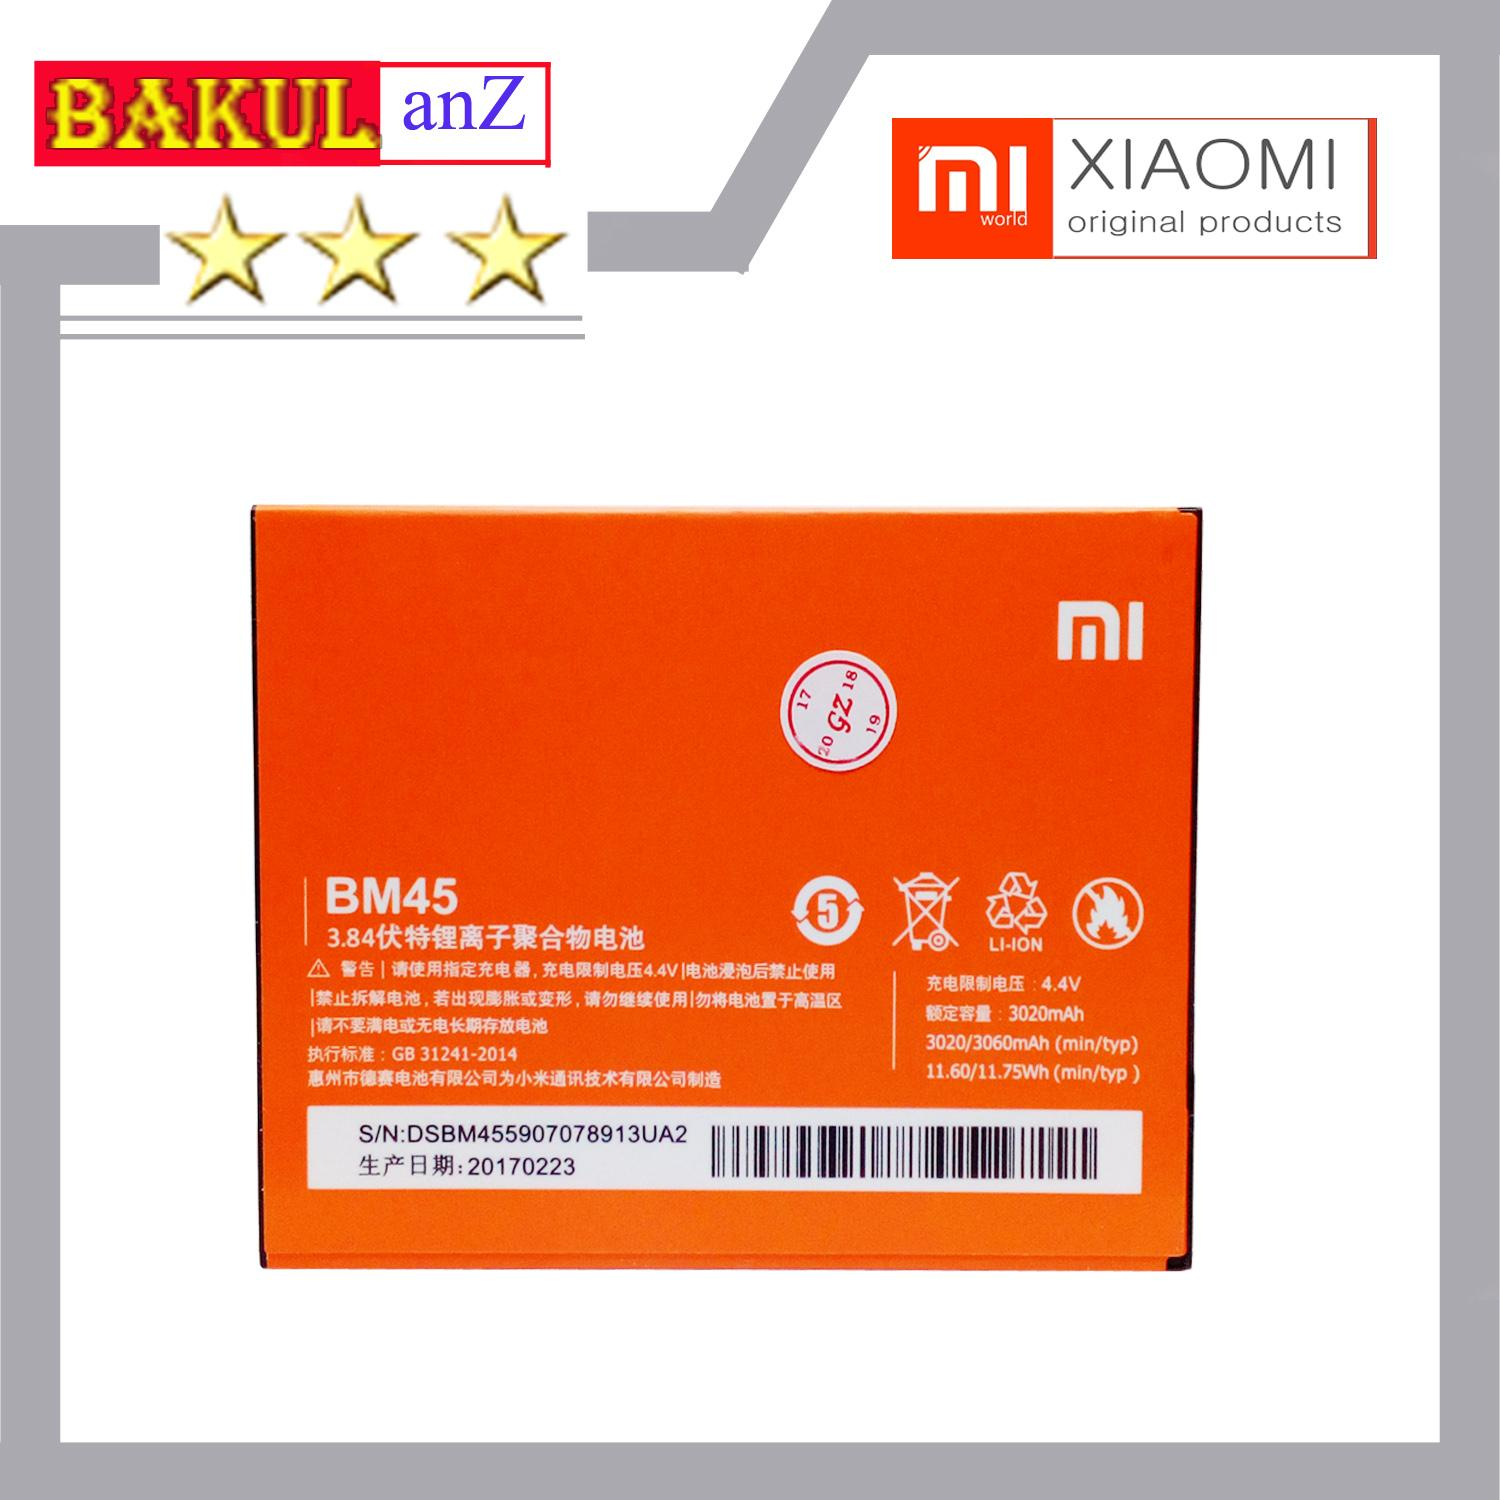 Buy Sell Cheapest Batrai Xiomi Bm Best Quality Product Deals Baterai Xiaomi Redmi 2 2s Bm44 Original Batre Battery Hp Note Bm45 Batu Note2